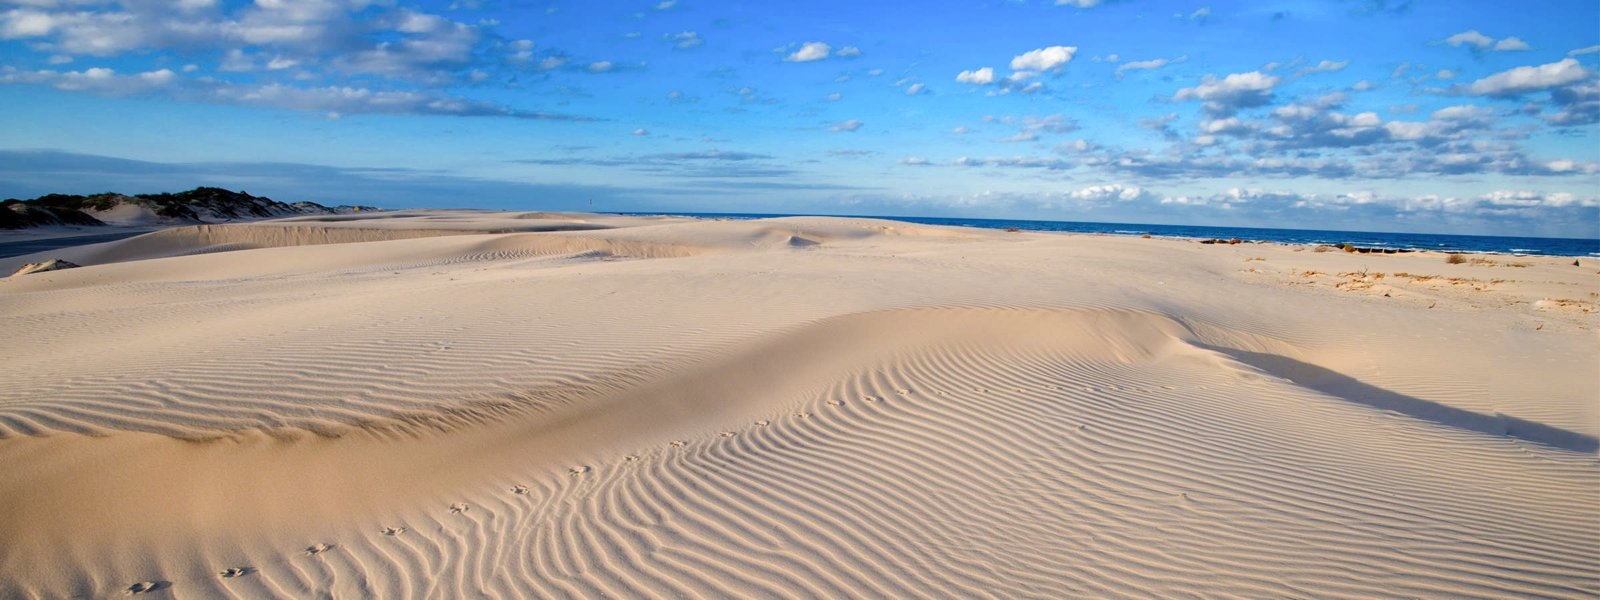 11 Amazing Beaches To Visit In The USA (6)